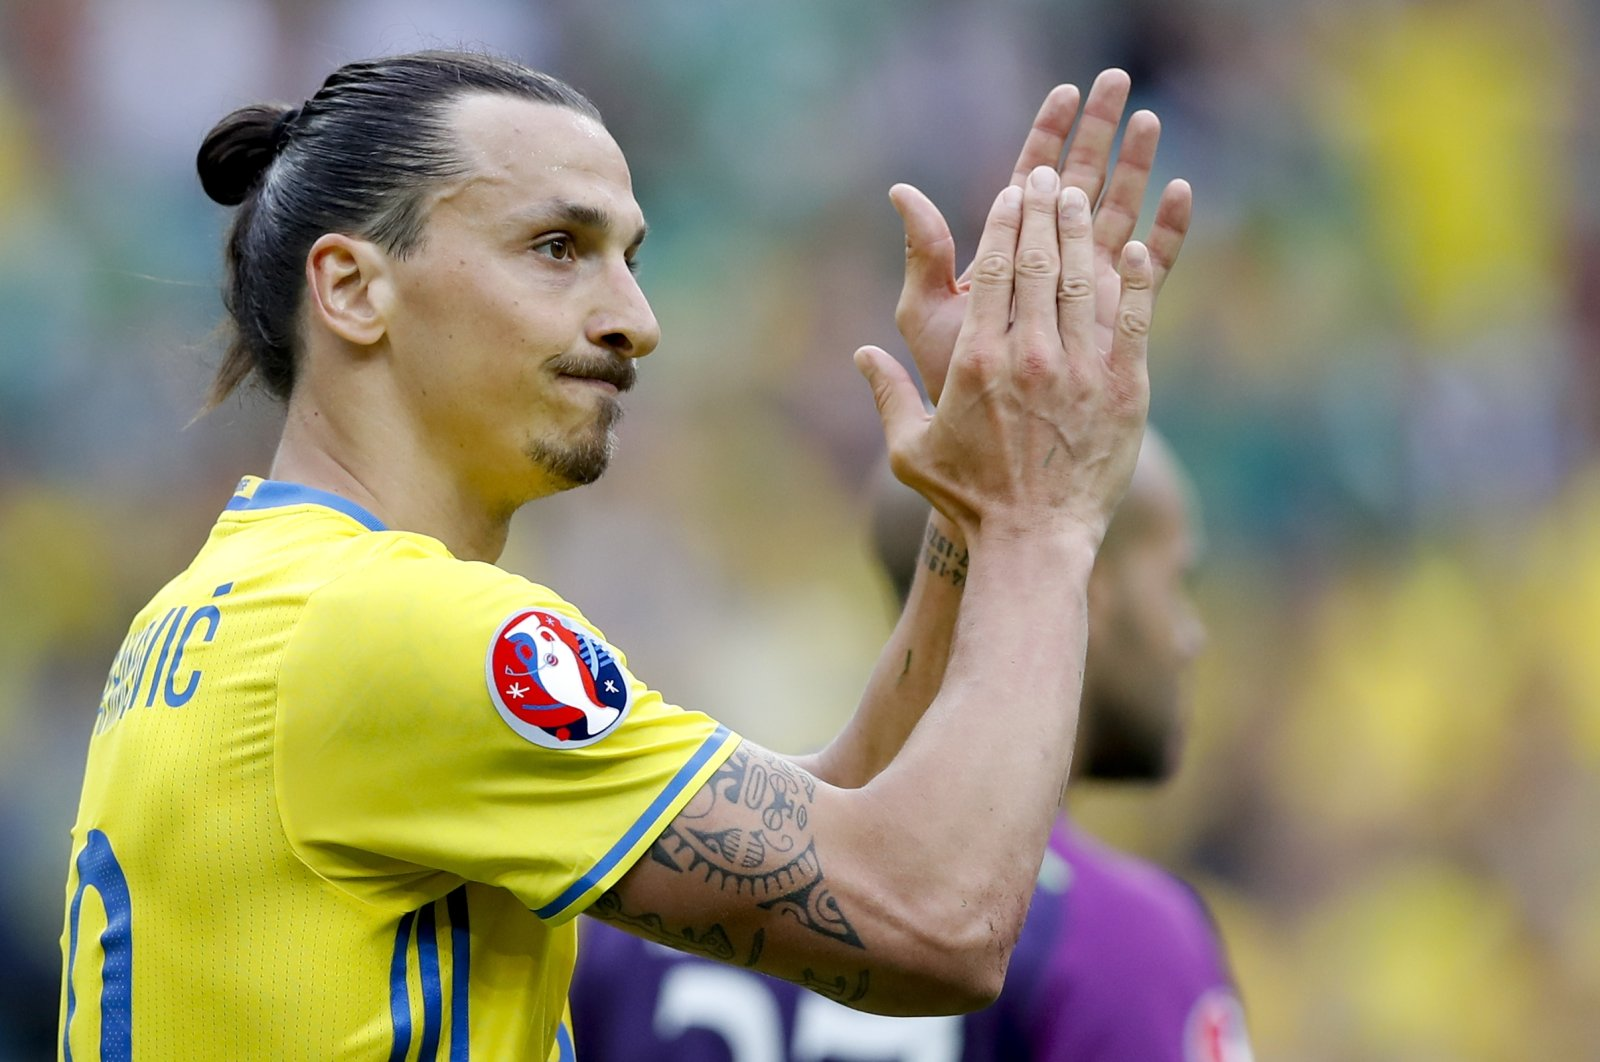 Sweden's Zlatan Ibrahimovic applauds during the Euro 2016 Group E football match between Ireland and Sweden at the Stade de France in Saint-Denis, north of Paris, France, June 13, 2016. (AP Photo)